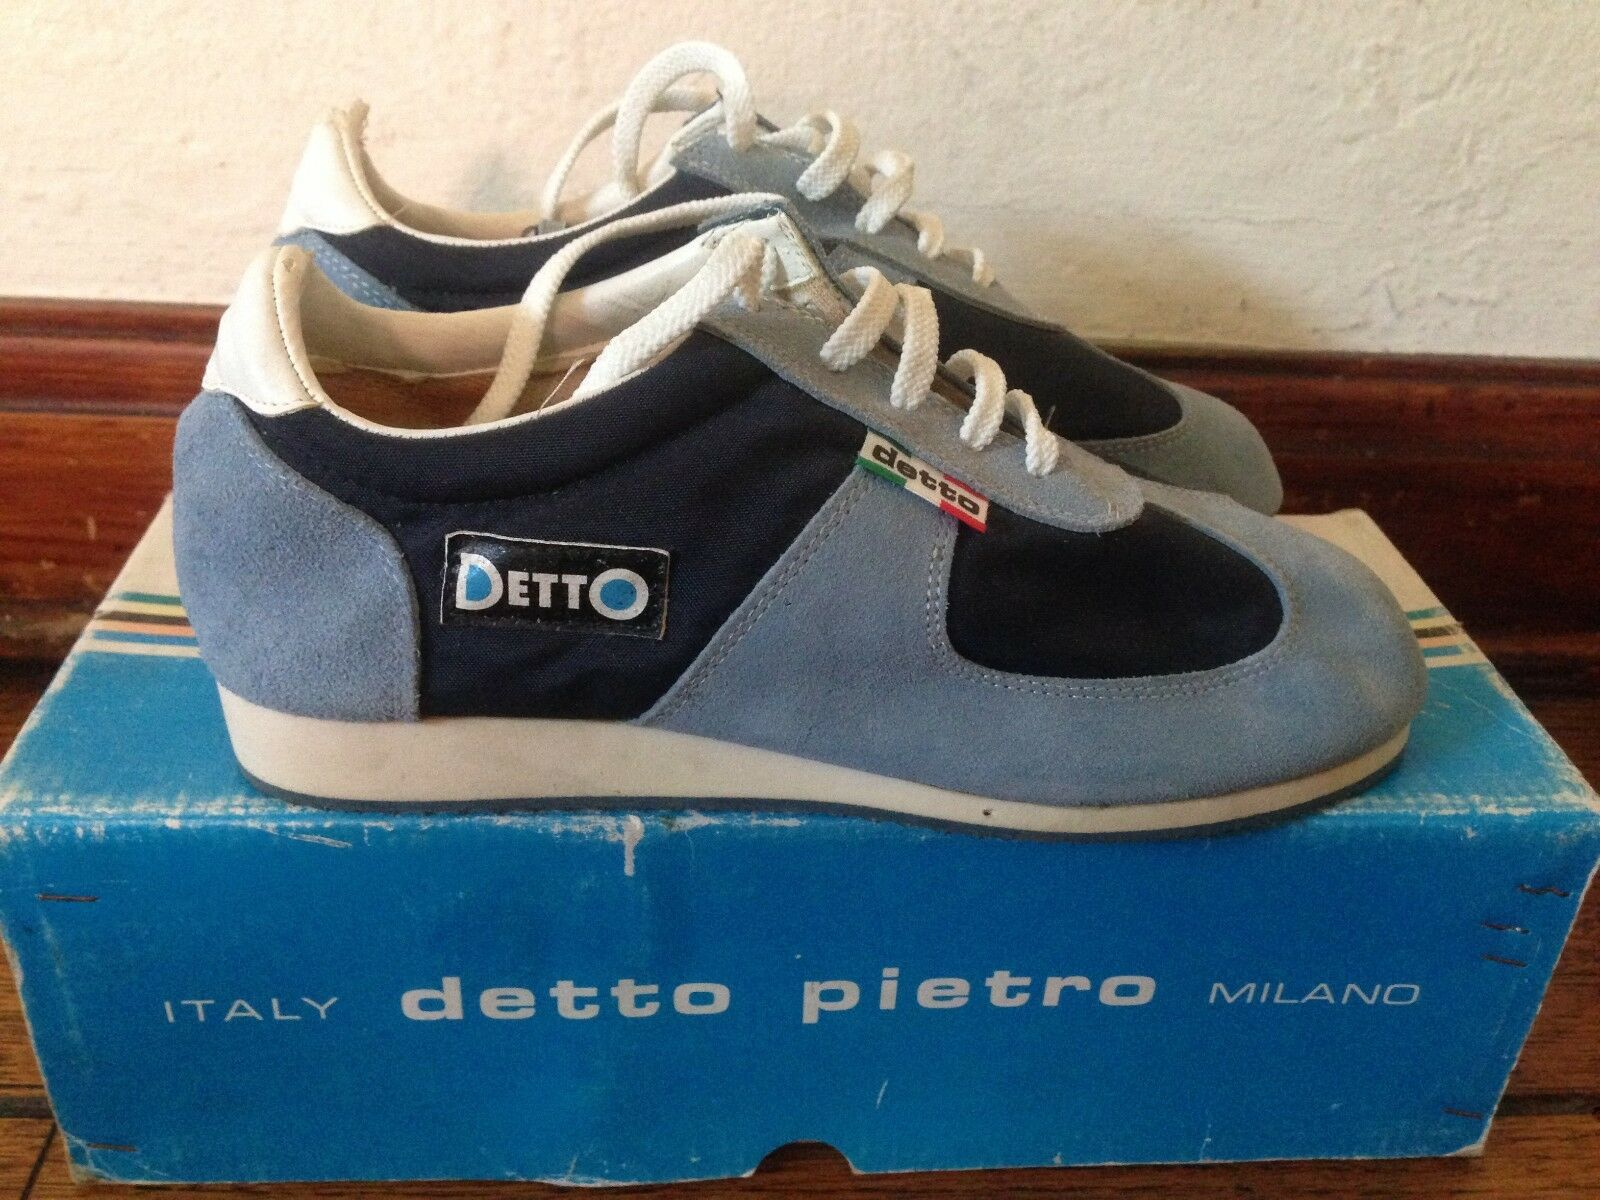 NOS Detto Pietro TD Touring Bike Cycling shoes Sneakers bluee Suede Nylon 37 NIB